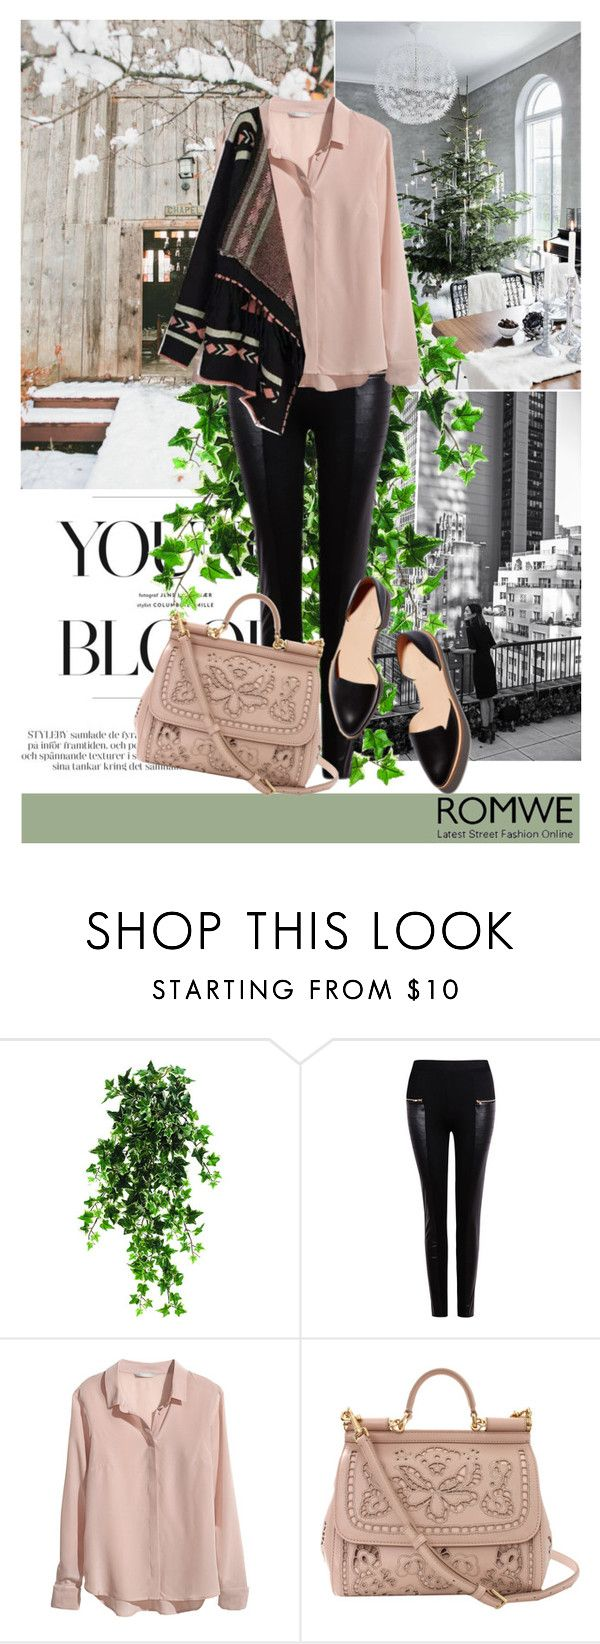 """""""Leave the past where it belongs~!♥"""" by av-anul ❤ liked on Polyvore featuring H&M, Dolce&Gabbana, women's clothing, women, female, woman, misses, juniors, romwe and avanul"""